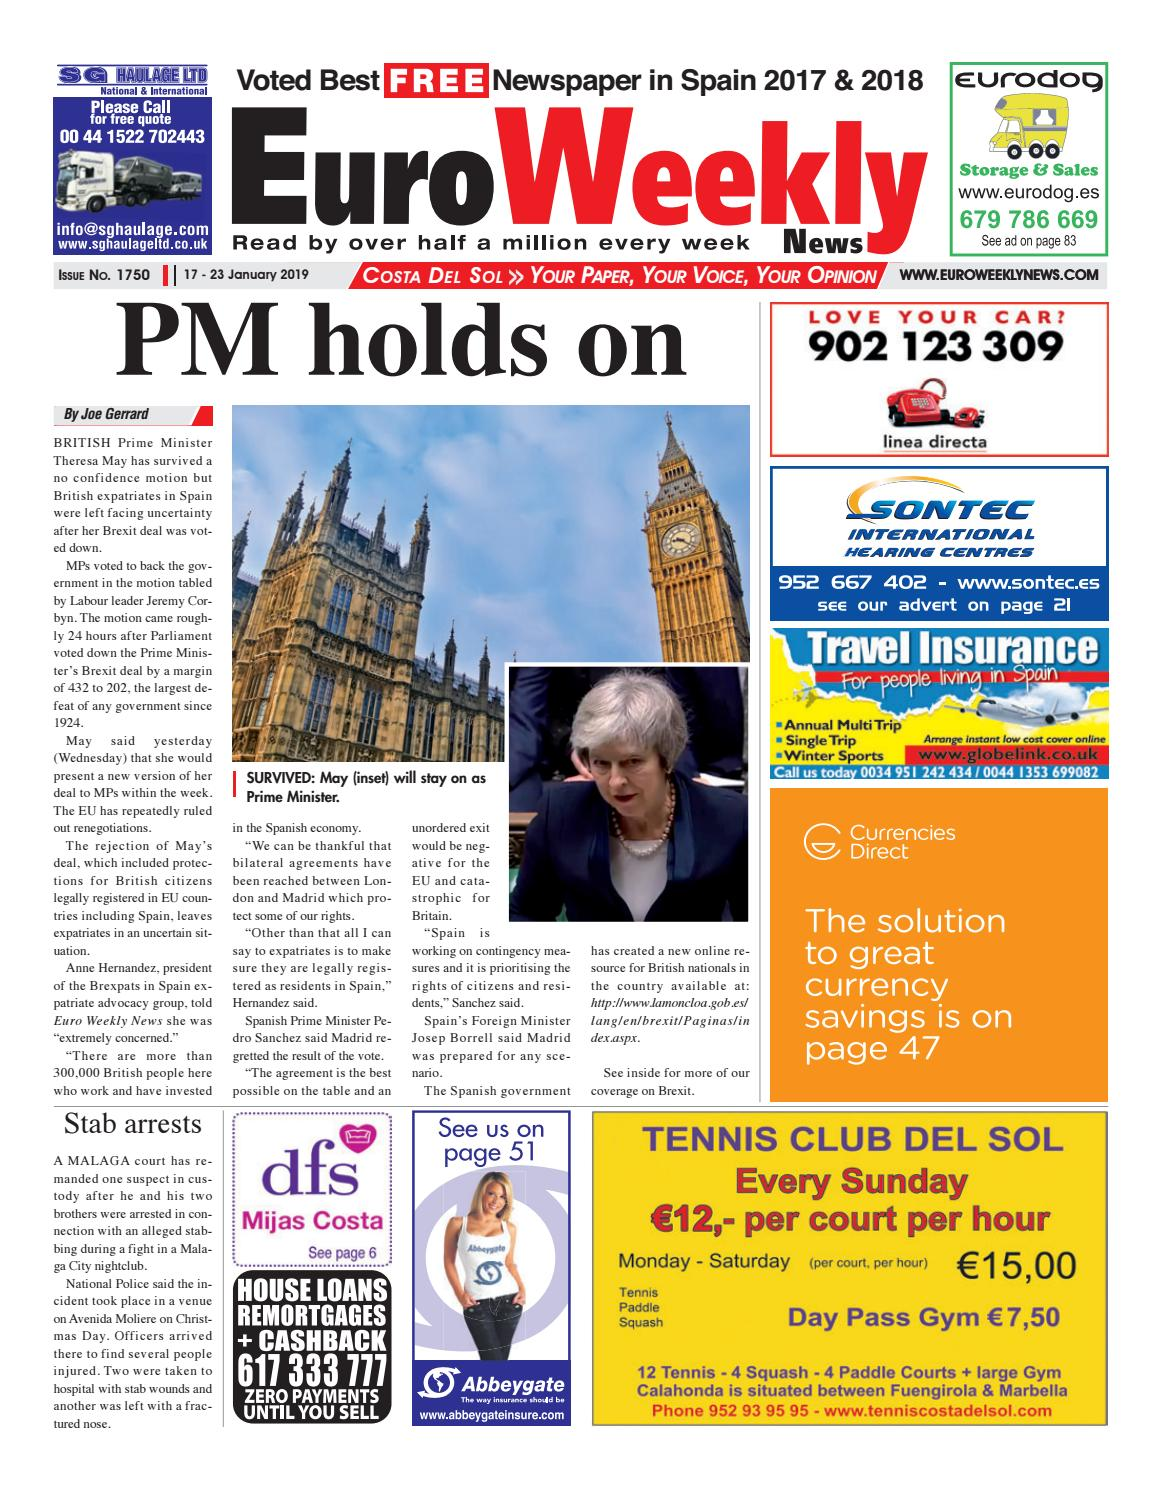 Euro Weekly News - Costa del Sol 17 - 23 January 2019 Issue 1750 by Euro  Weekly News Media S.A. - issuu 221a7a3eeb1